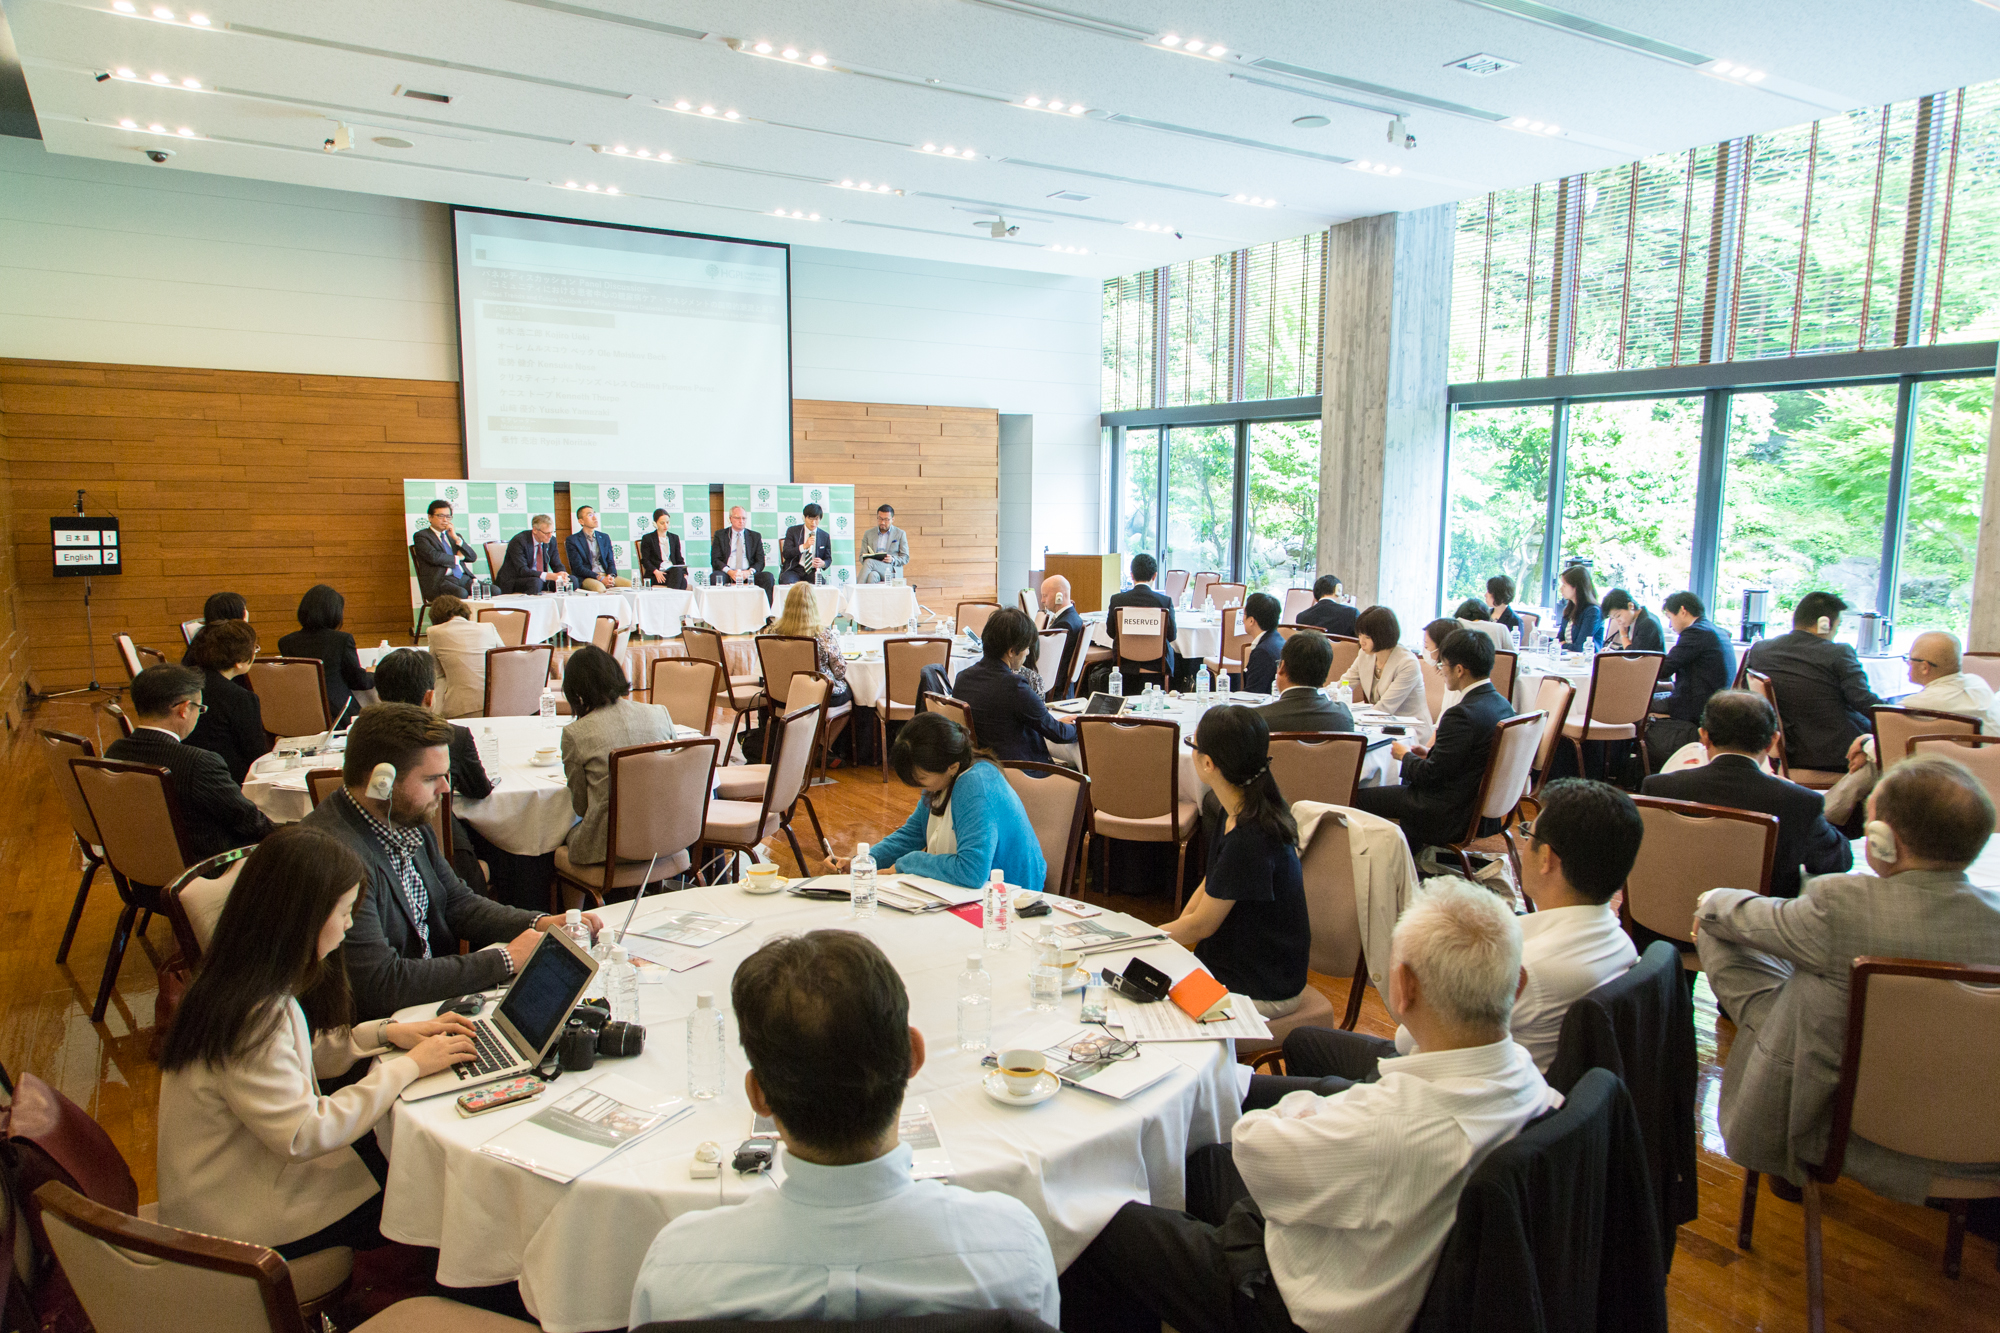 [Event Report] NCD Global Forum for Civil Society, Diabetes Session – Patient Leader Workshops and Open Forum (May 29, 2018)